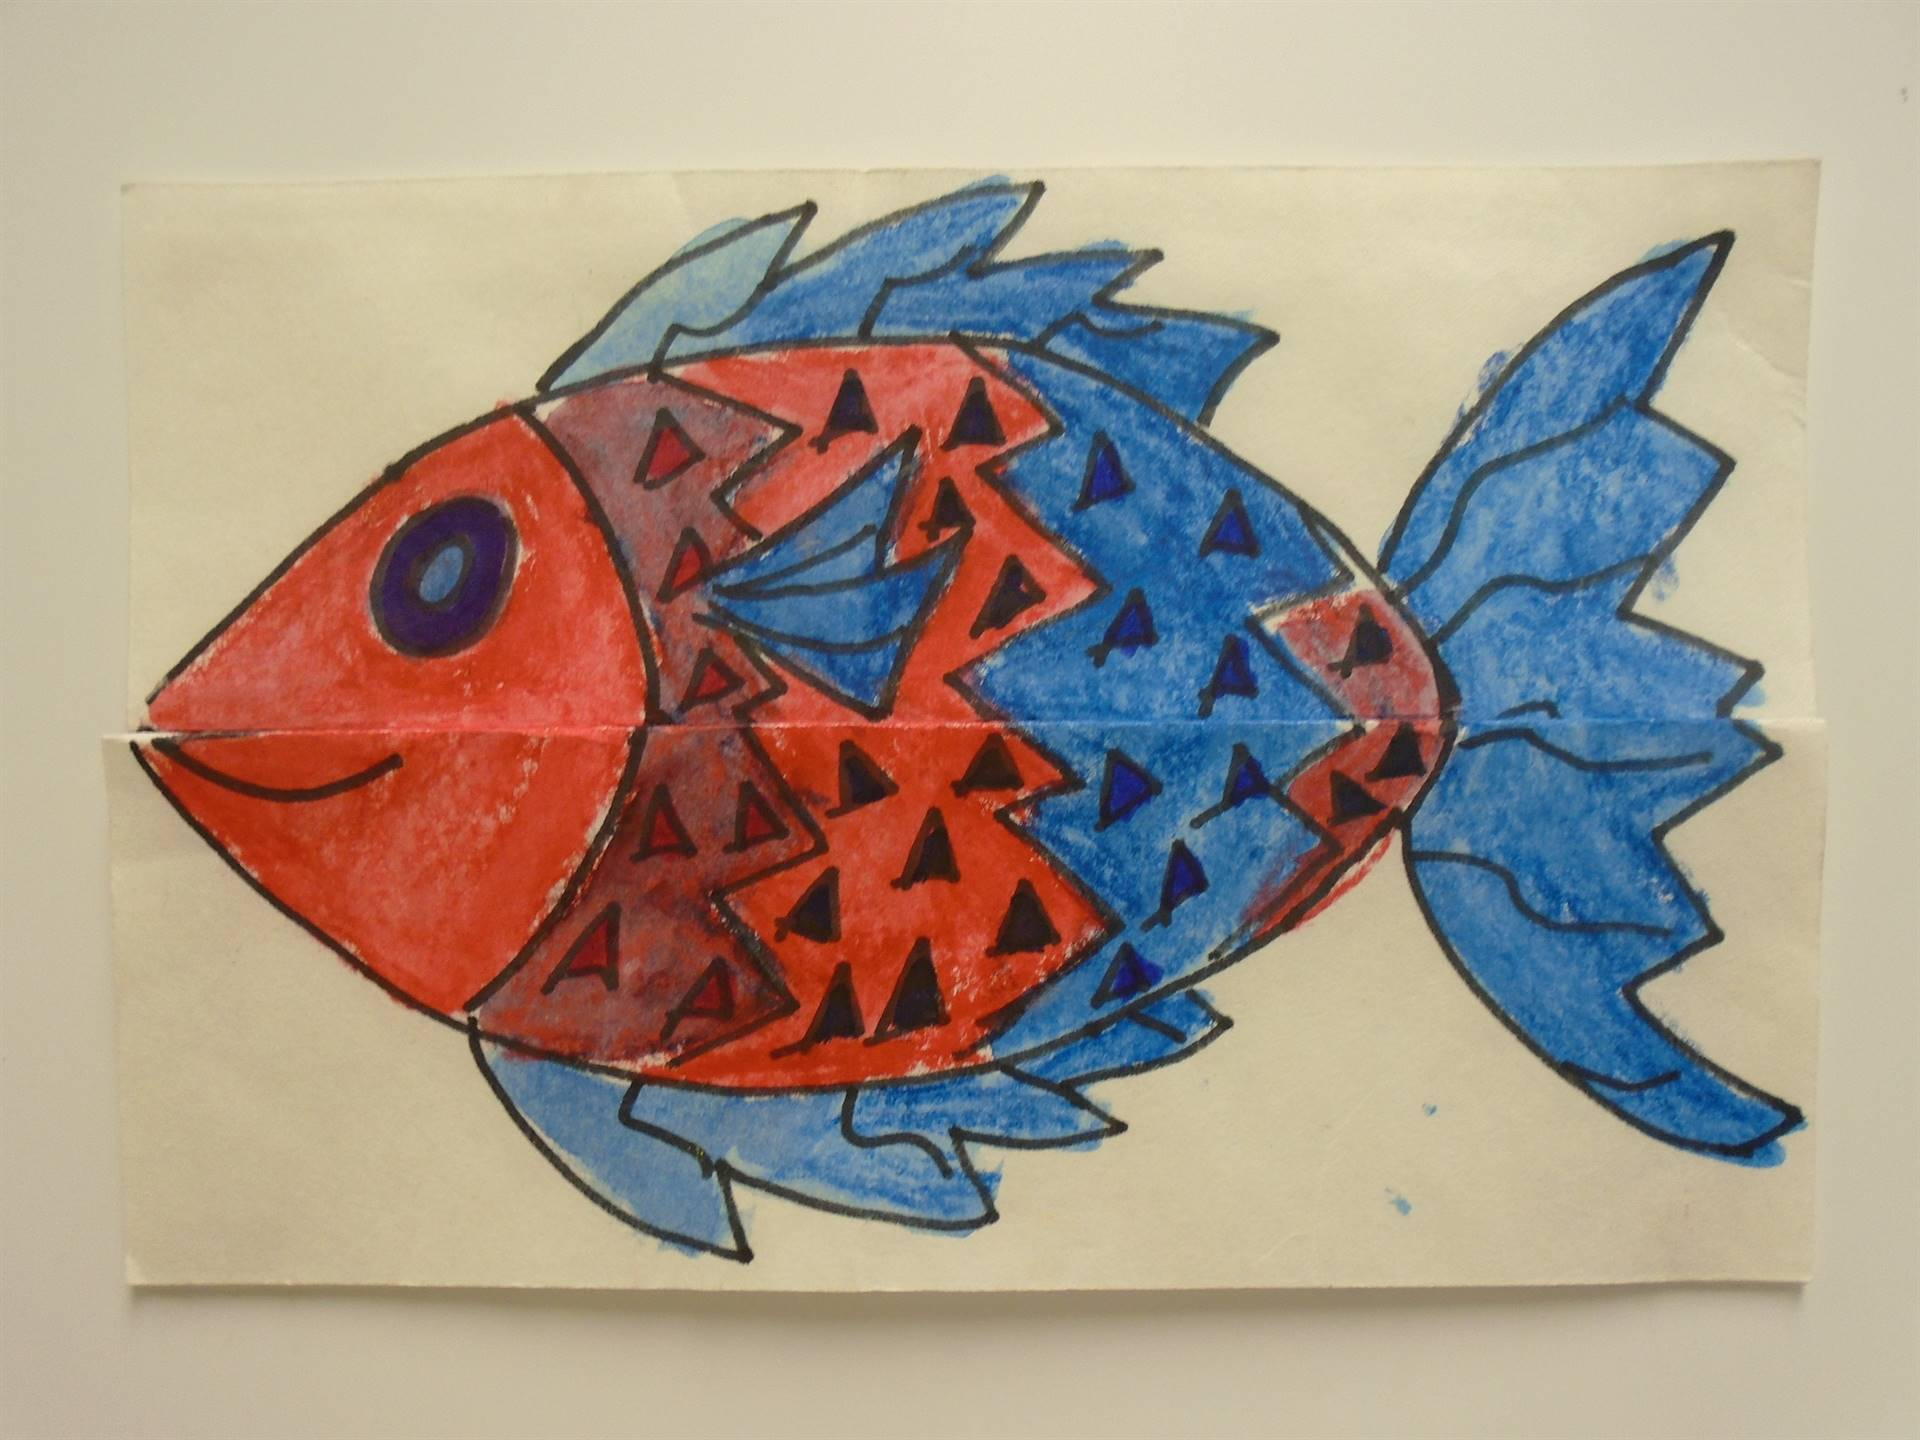 Colorful Fish (closed with unopened mouth)